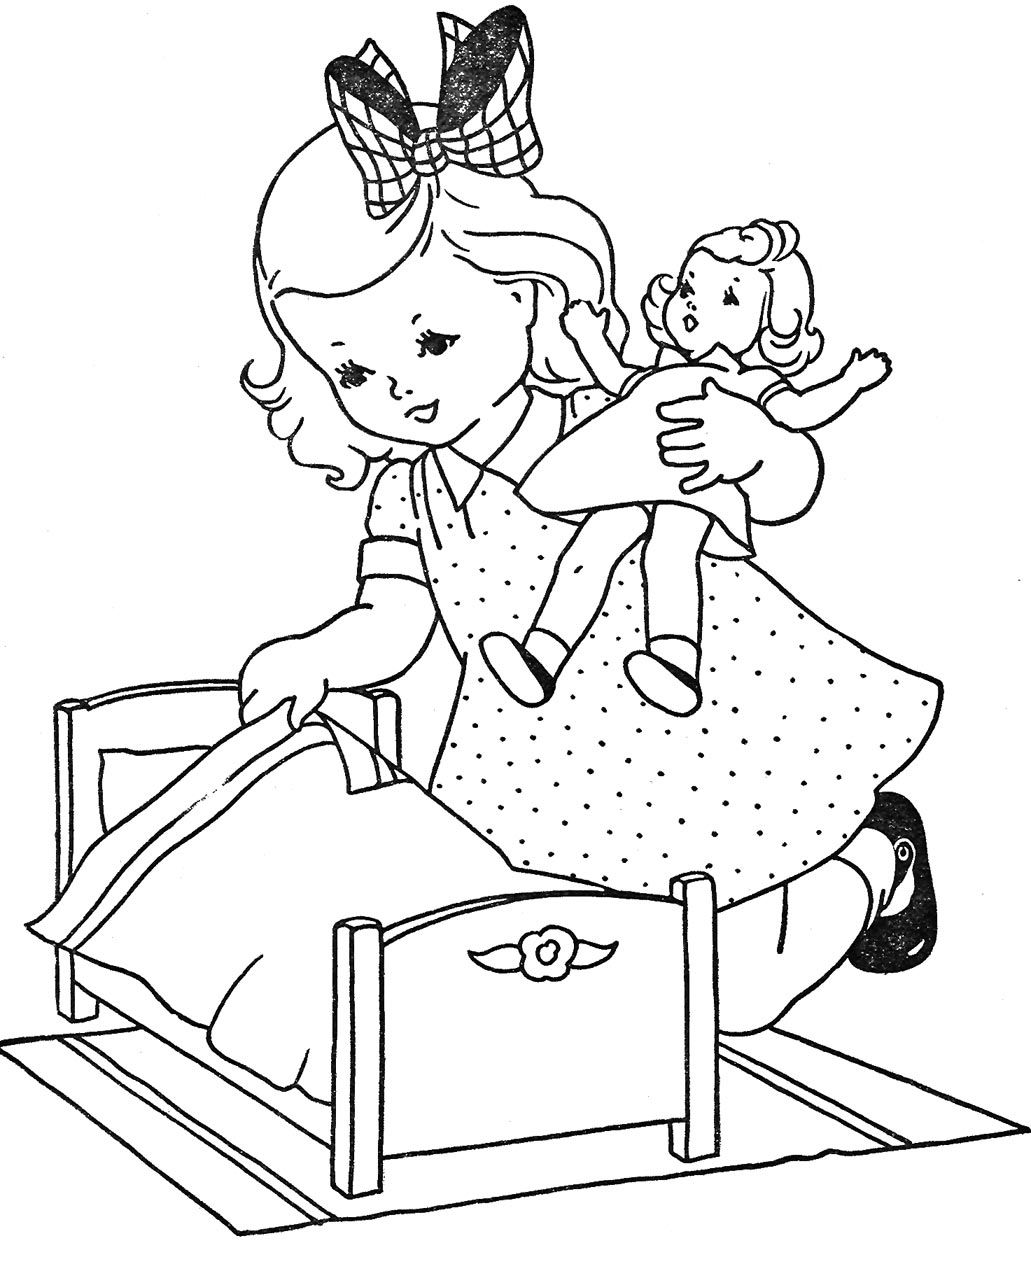 coloring template coloring for kids free printable tangled coloring pages for kids cool2bkids kids coloring template for coloring